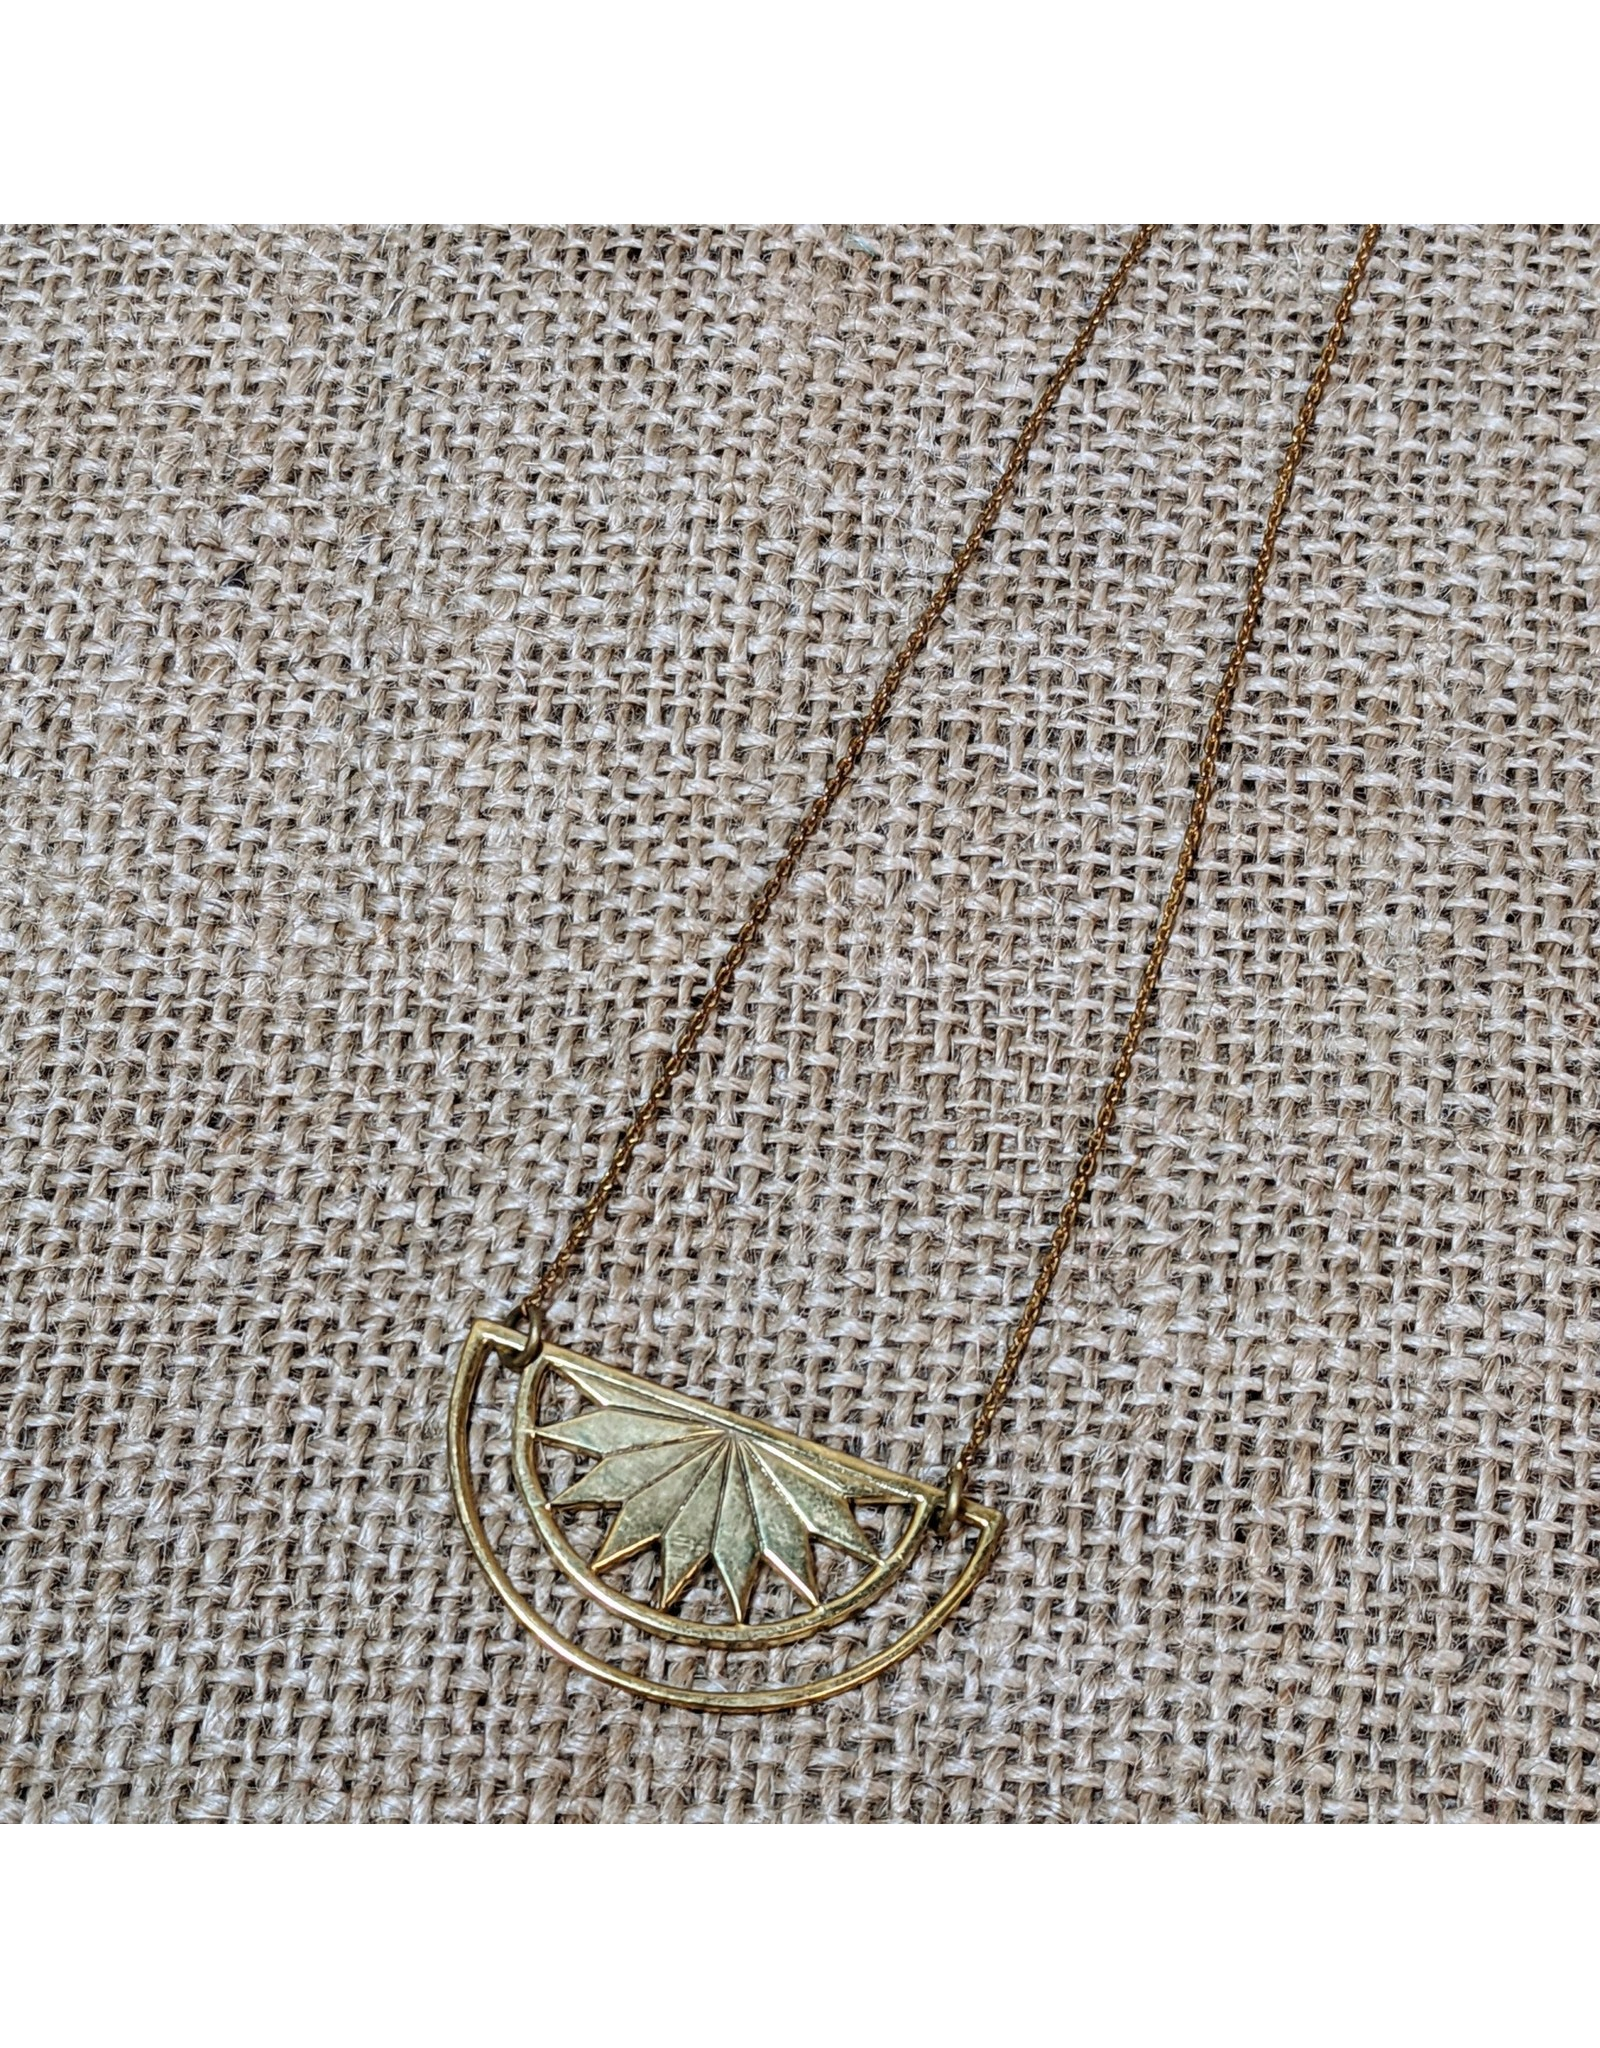 Ten Thousand Villages CLEARANCE Sun Ray Resilience Necklace, Cambodia